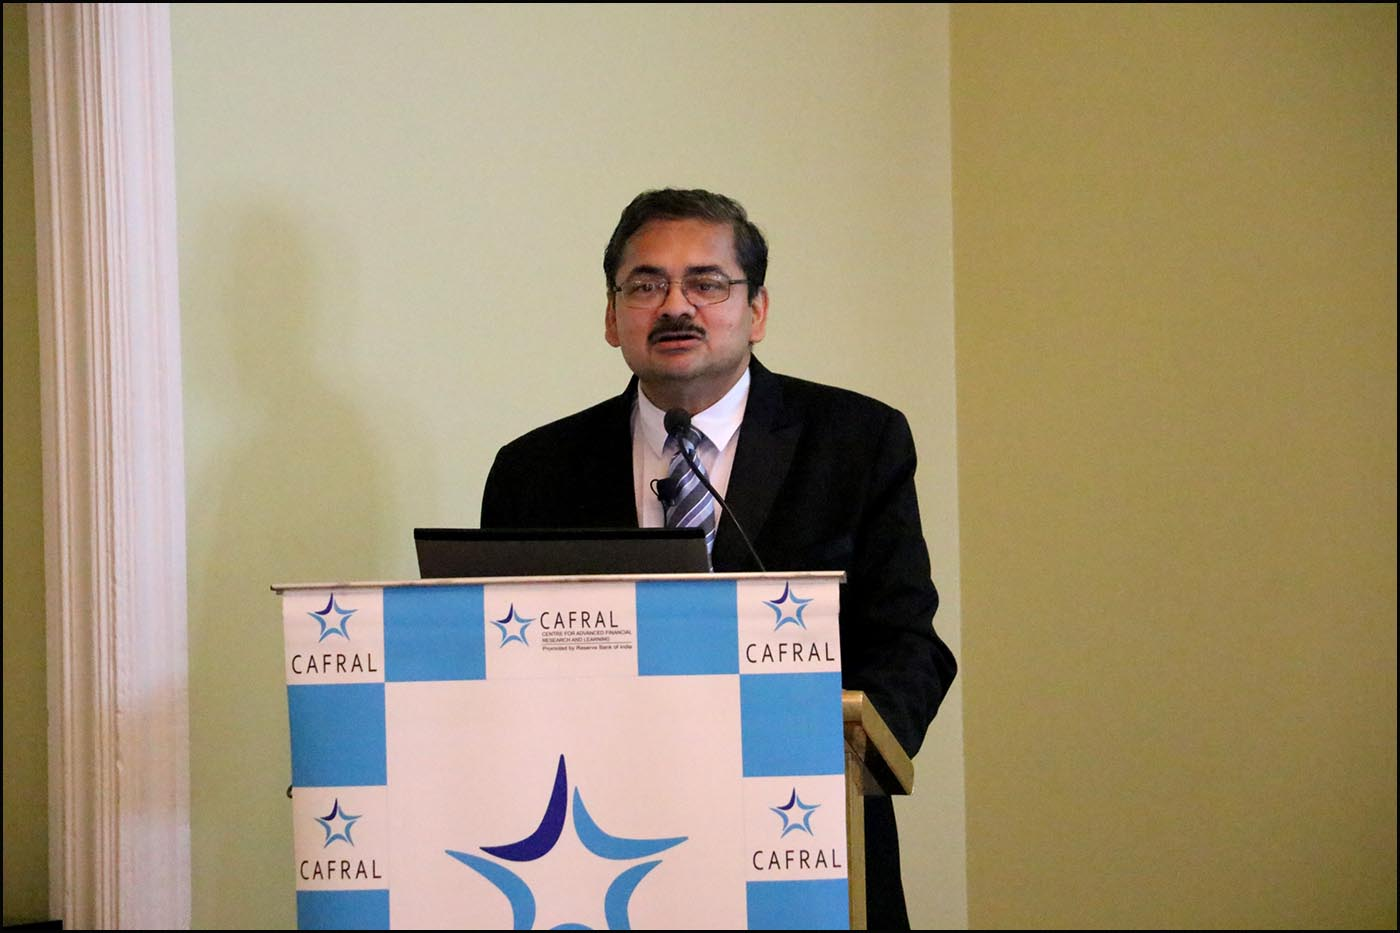 Pradeep C Bandivadekar, Chief Risk Officer, Tata Capital Limited